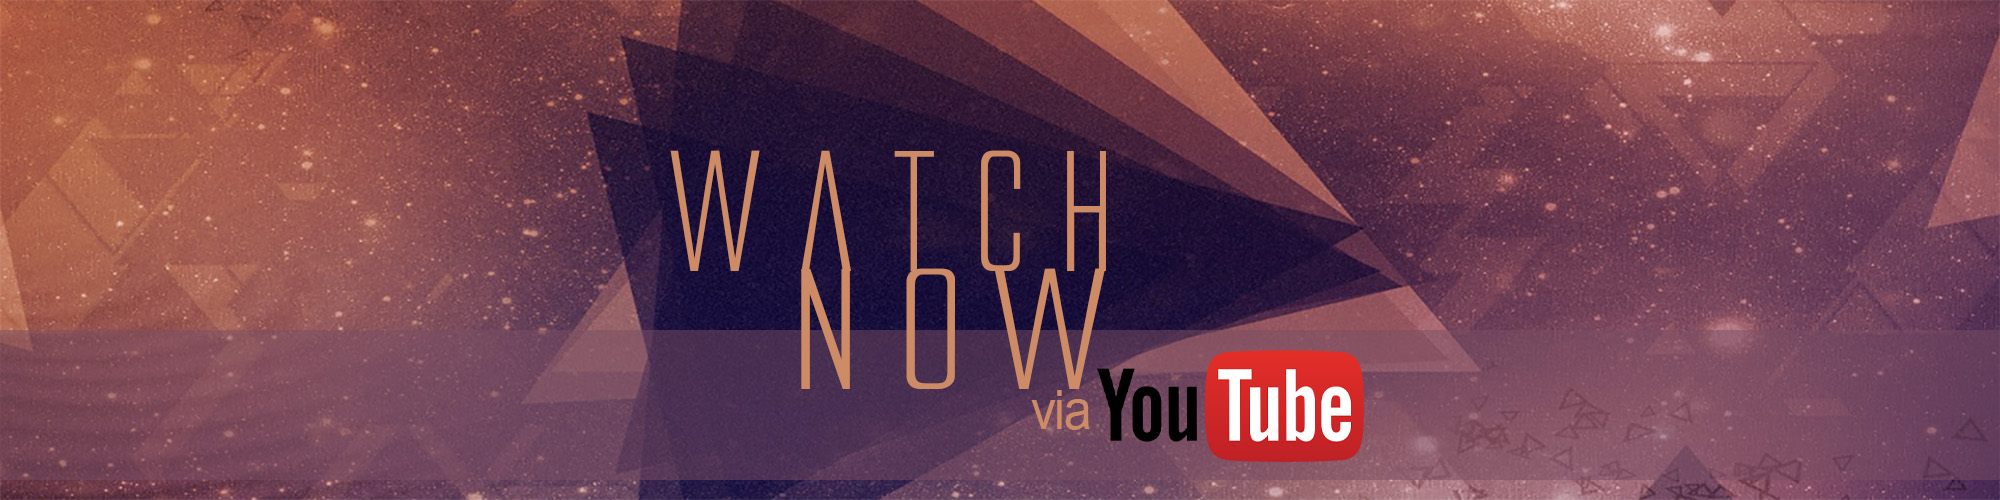 Watch-Now-banner-1